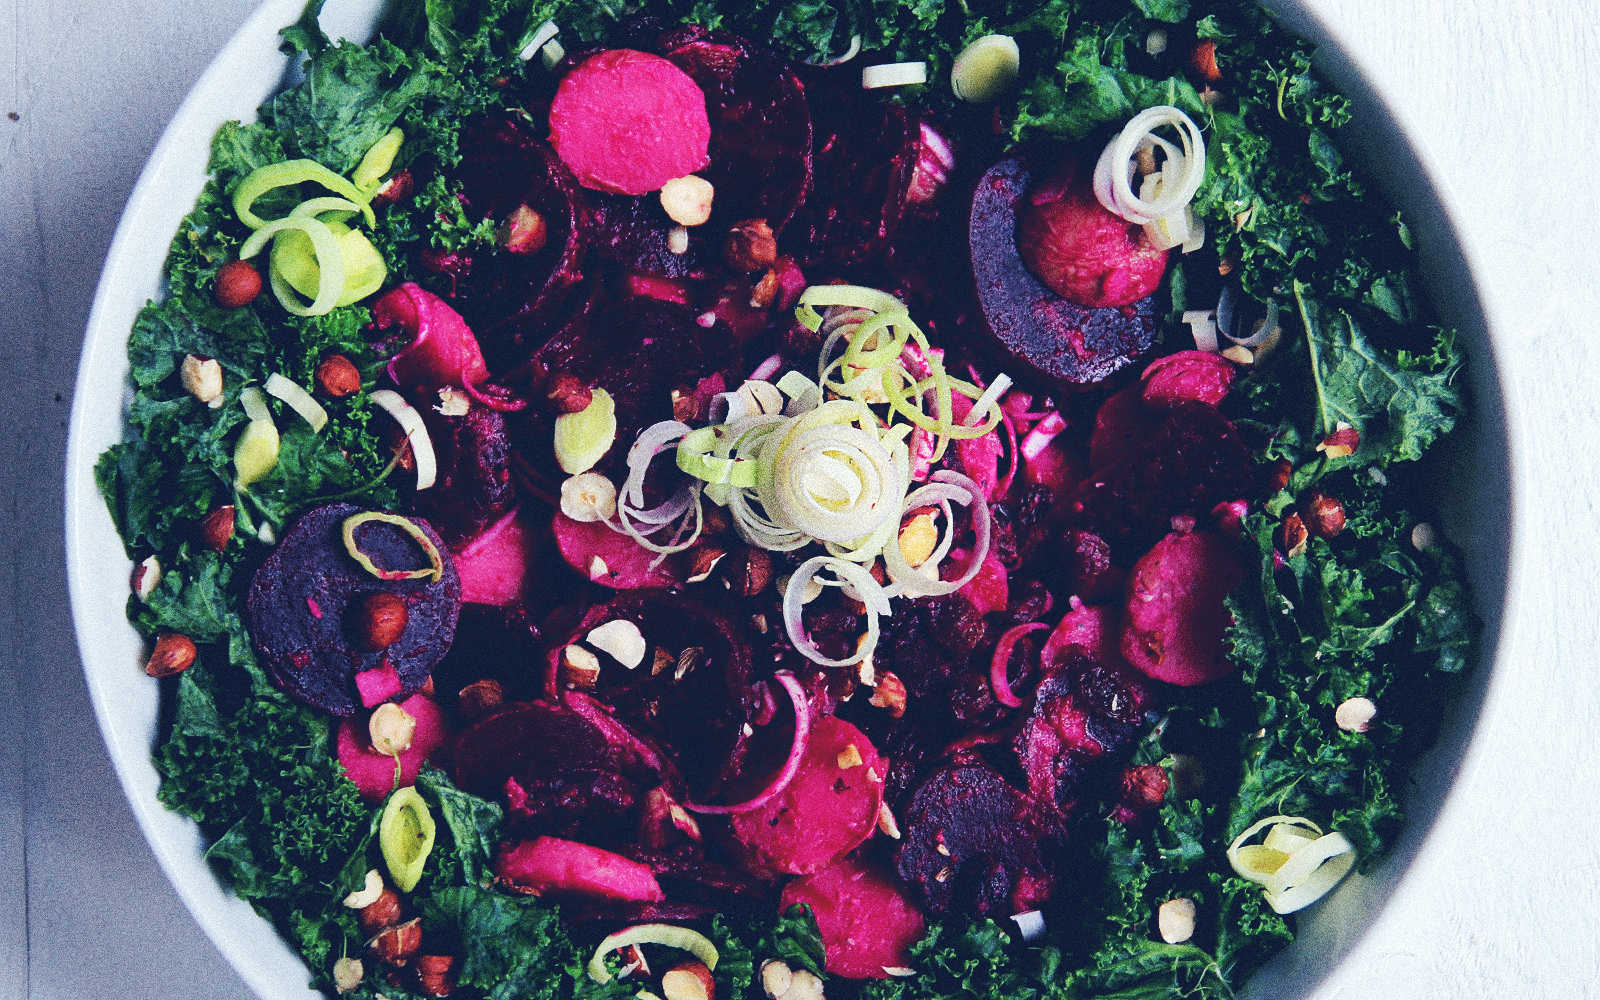 Beetroot Salad With Kale and Toasted Hazelnuts